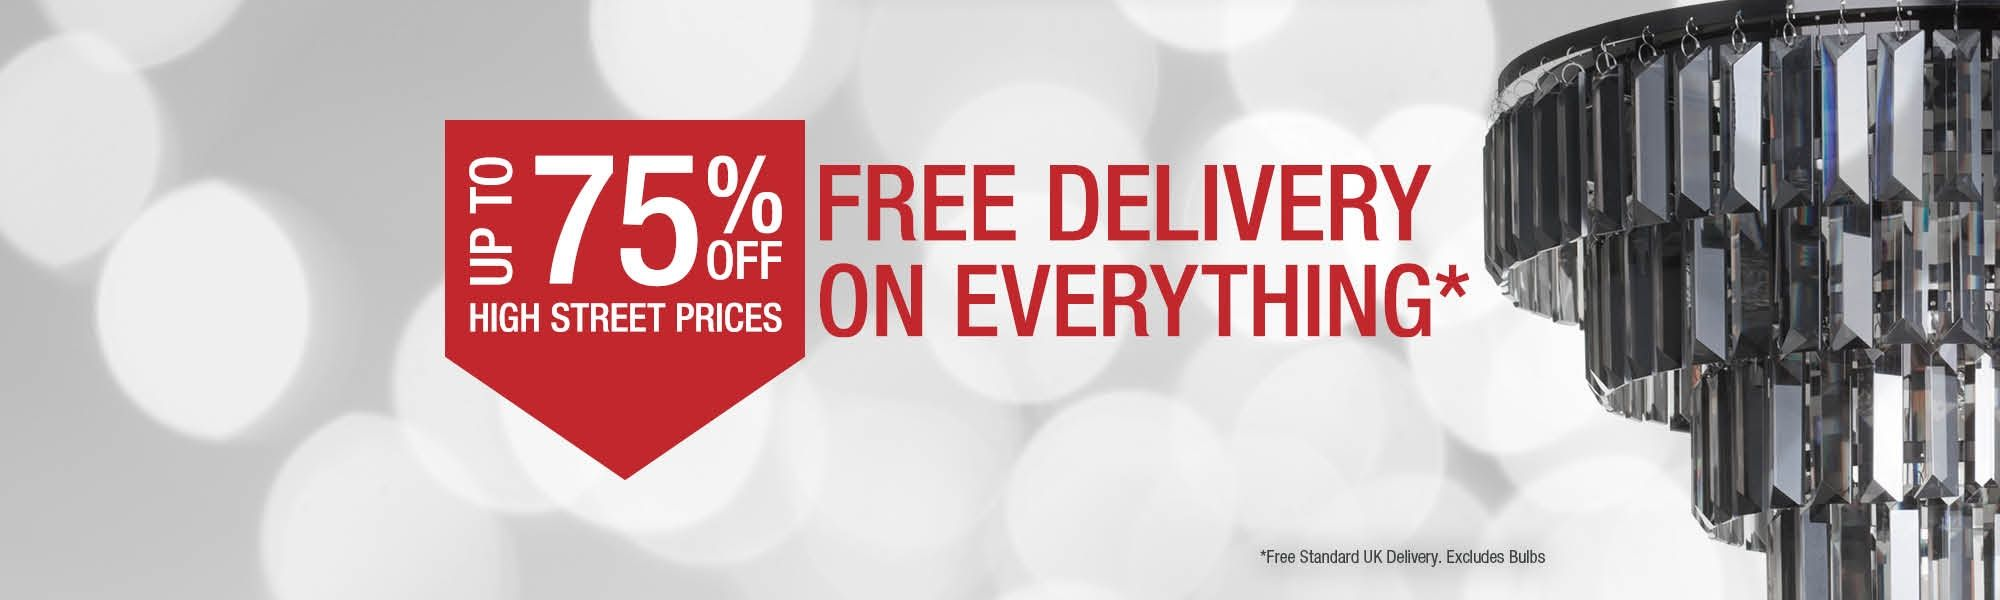 Up To 75% Off High Street Prices - Free Delivery on Everything*